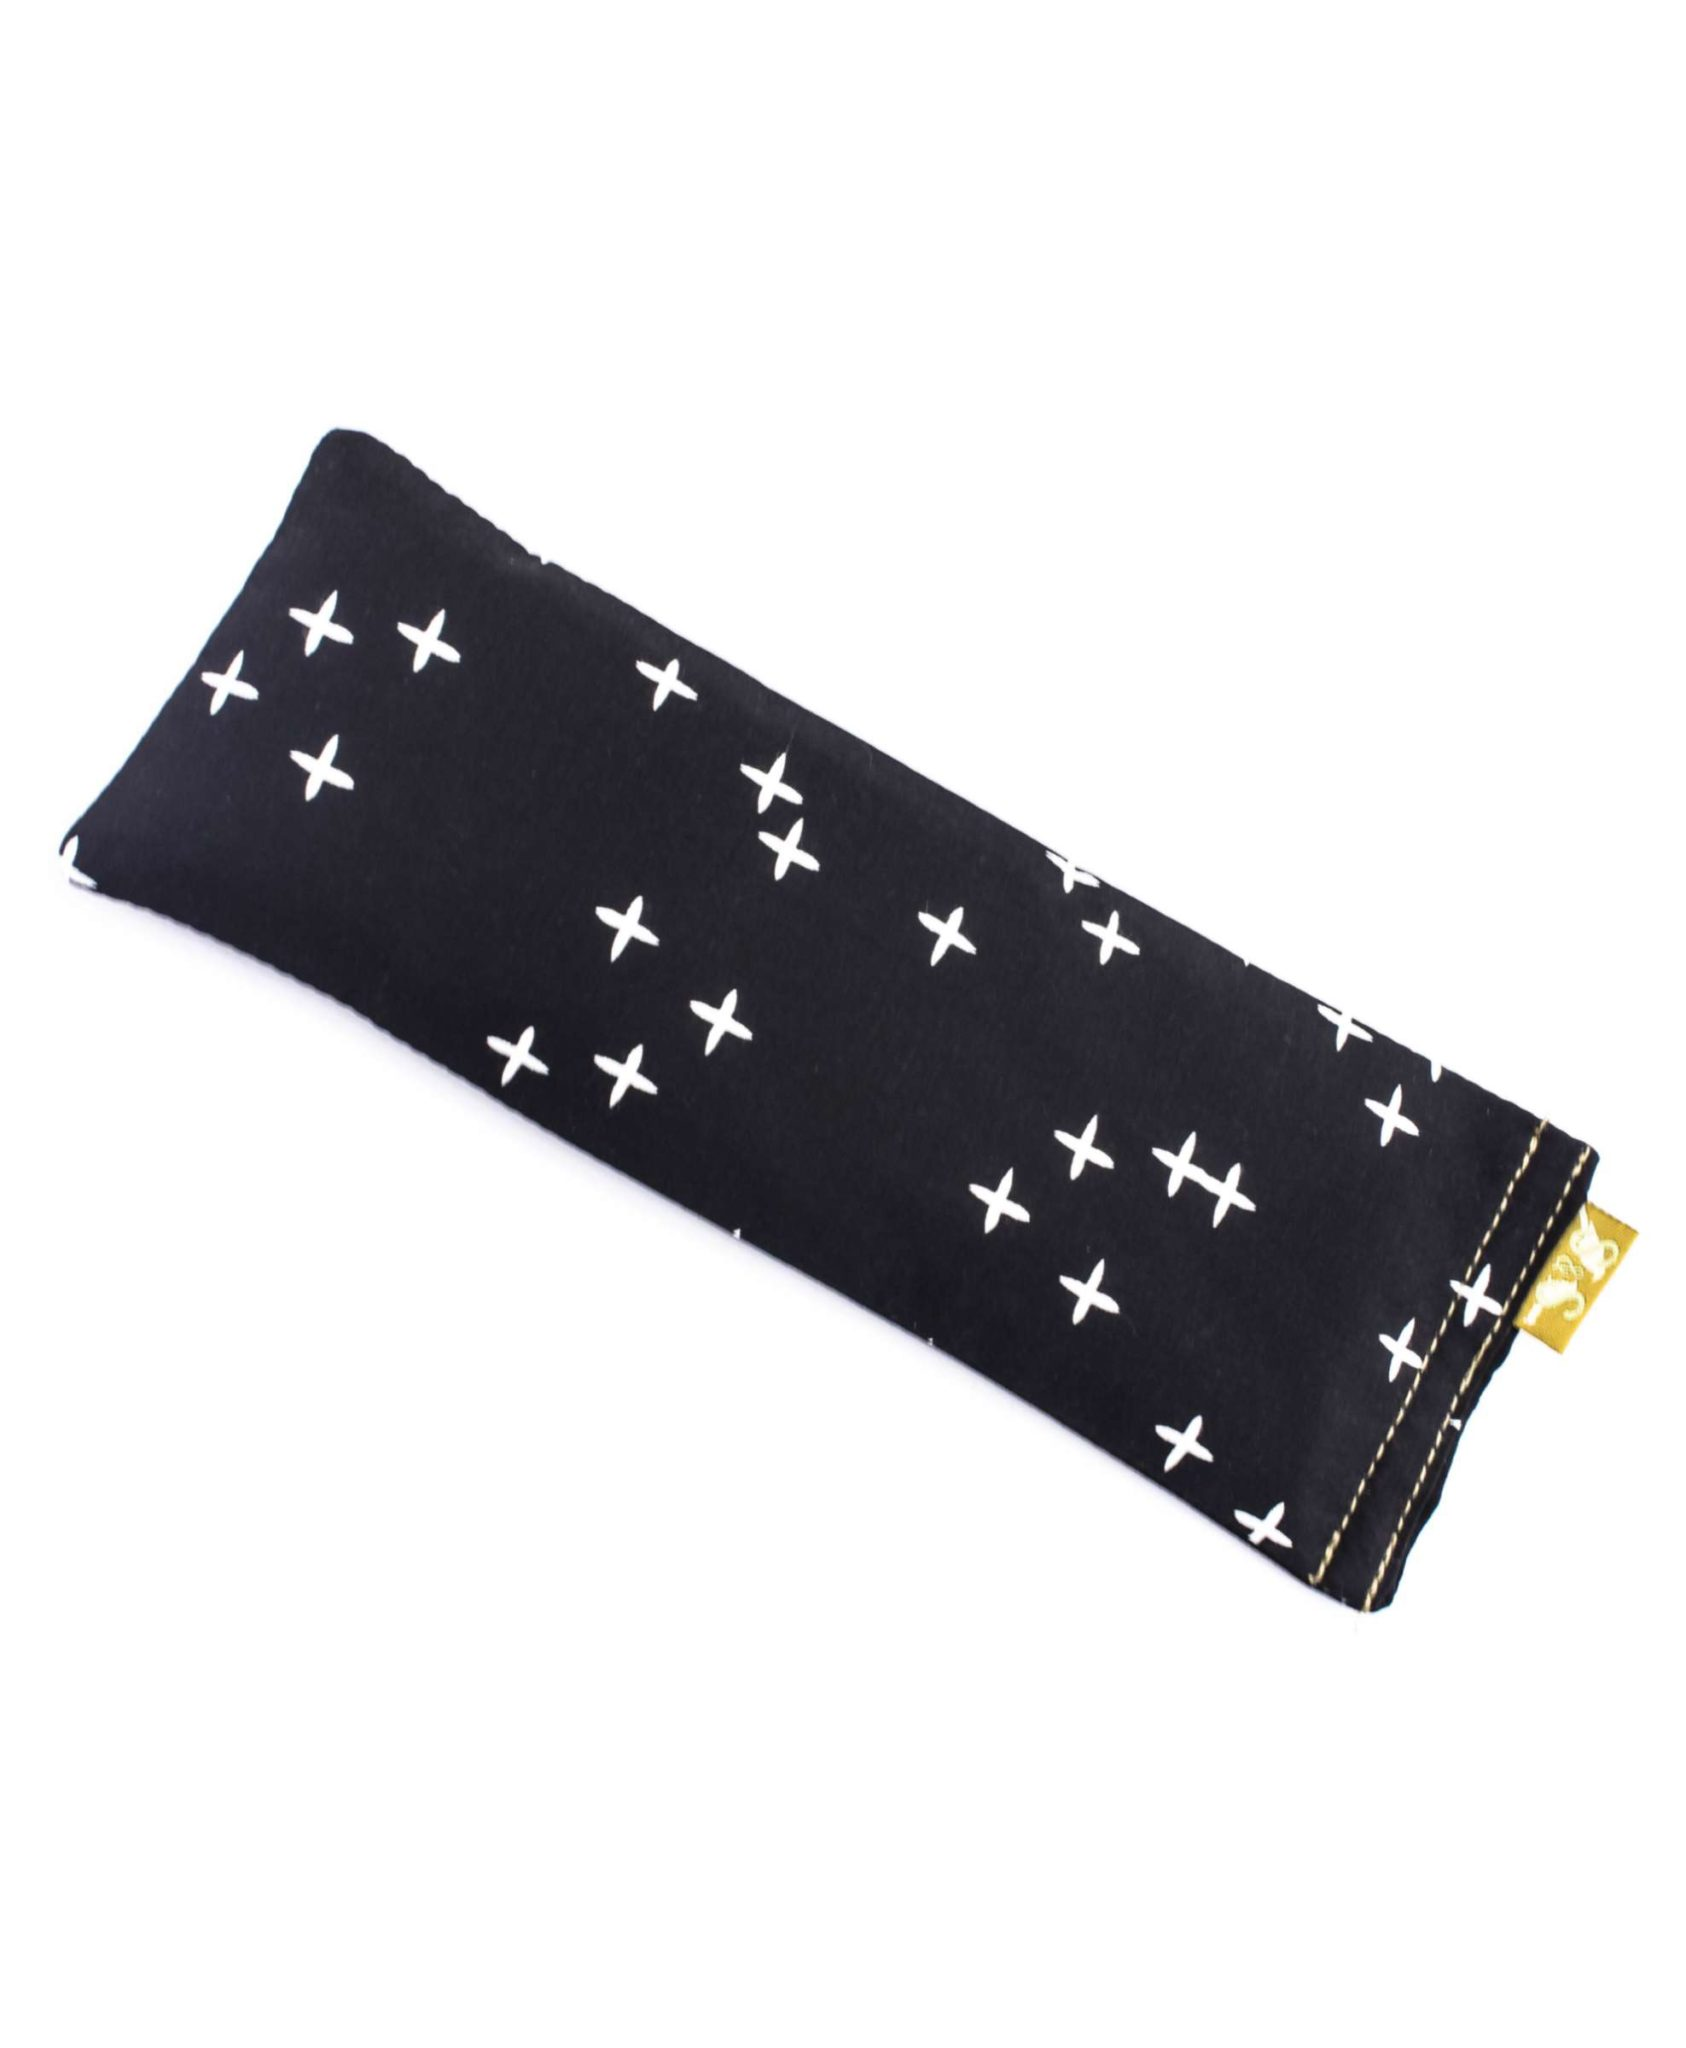 Eye Pillow Australia Crosses On Black Eye Pillow Yoga Designer Melbourne Australia